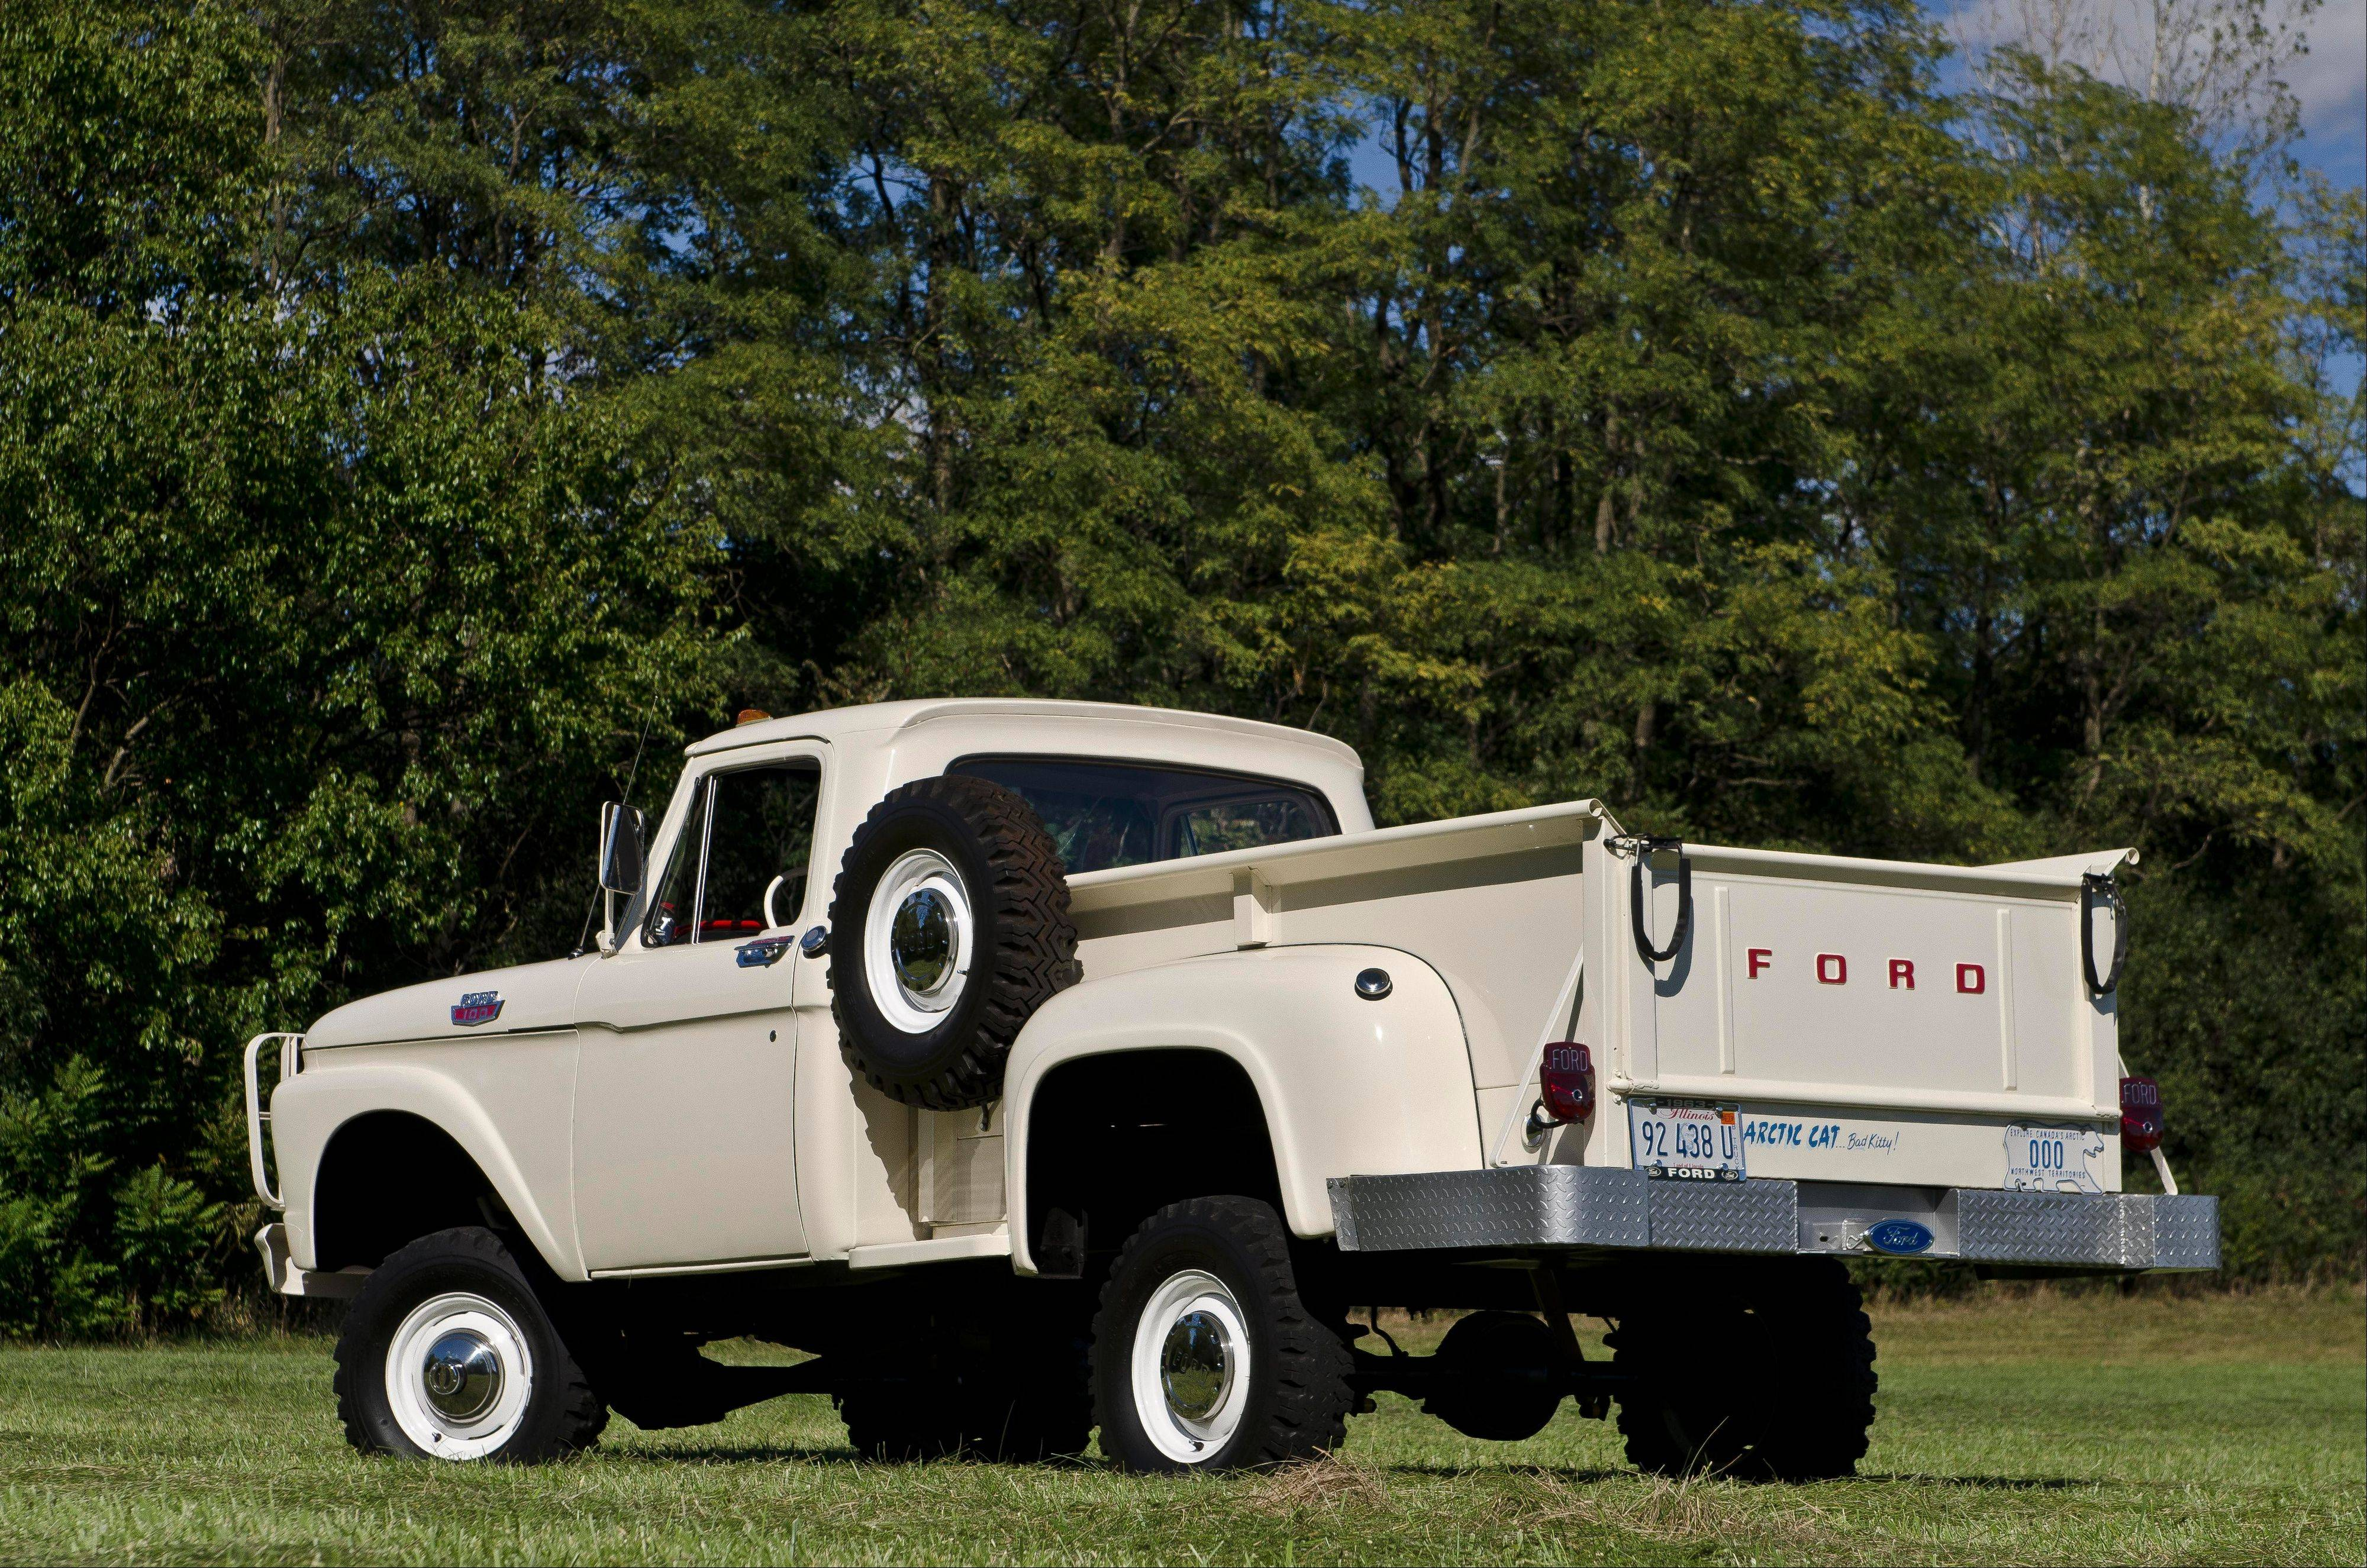 This 1963 Ford F100 4x4 pickup is capable of hauling a 9,000-pound payload.